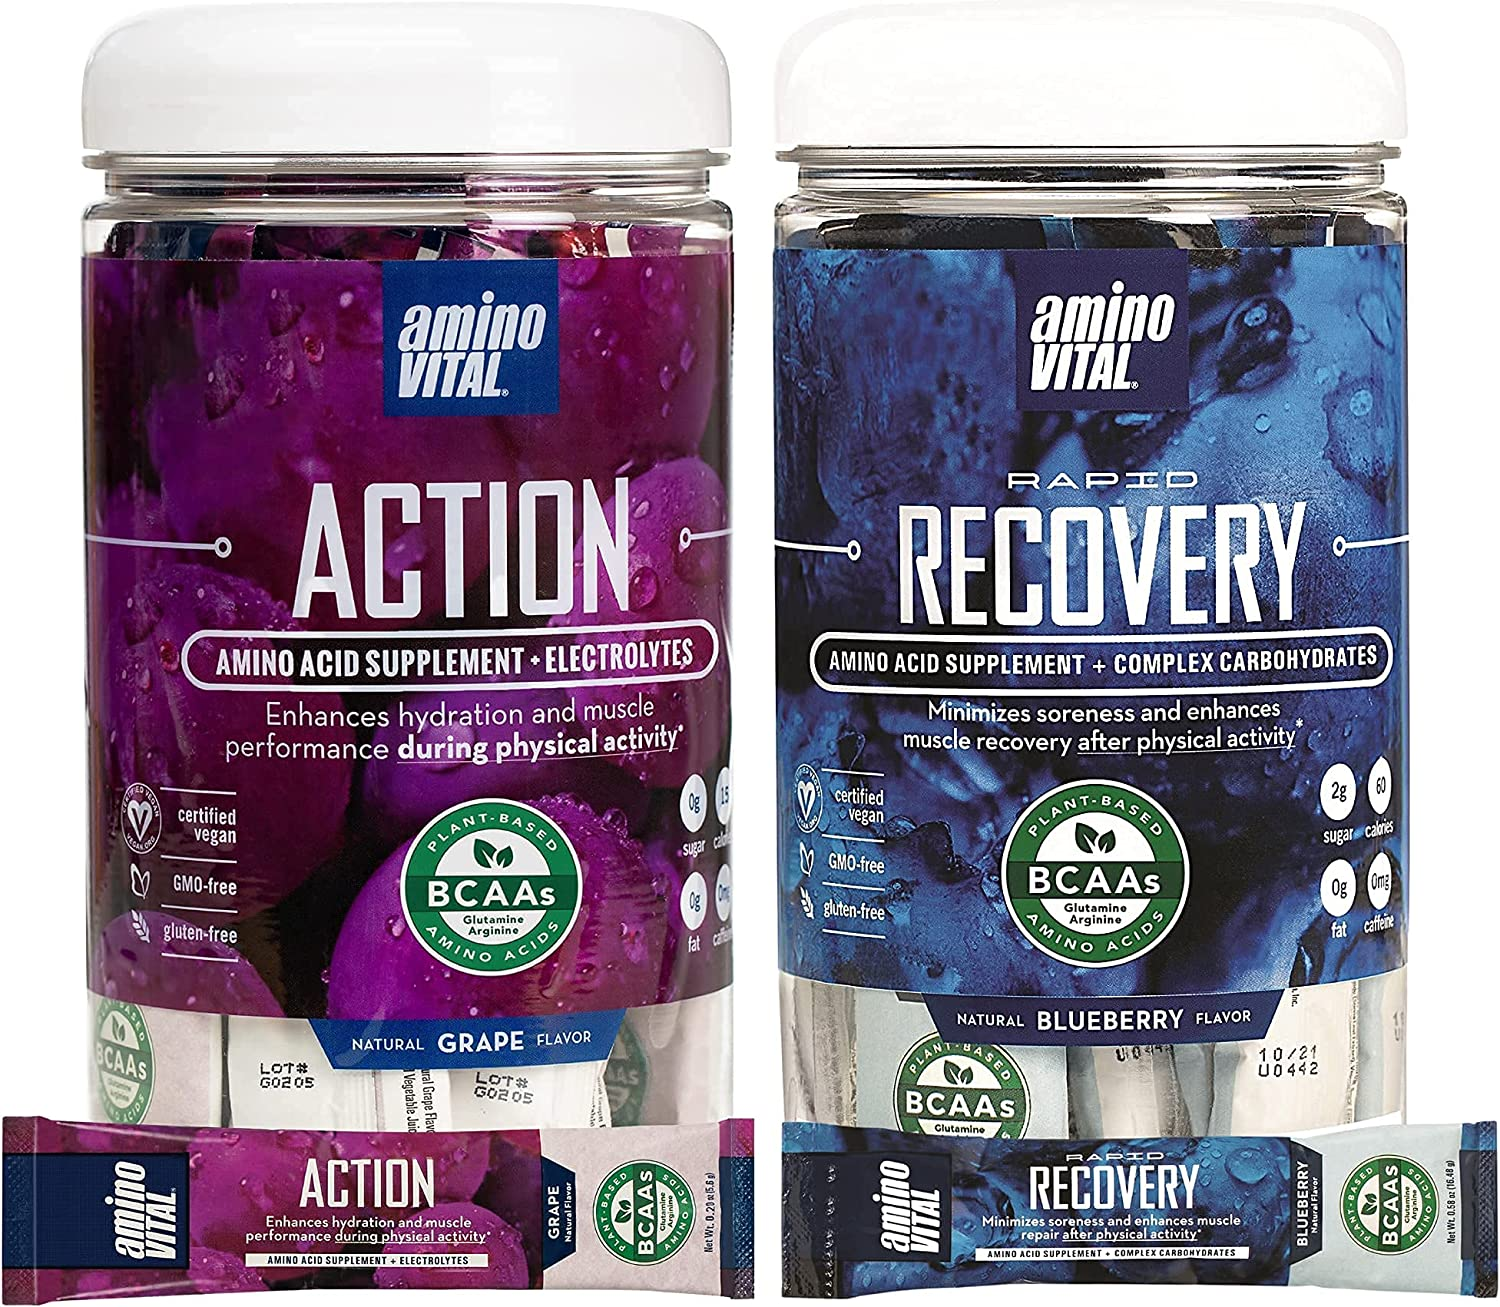 Amino Gorgeous VITAL Action Rapid Recovery- BCAA Pre Acids Popular popular Po and